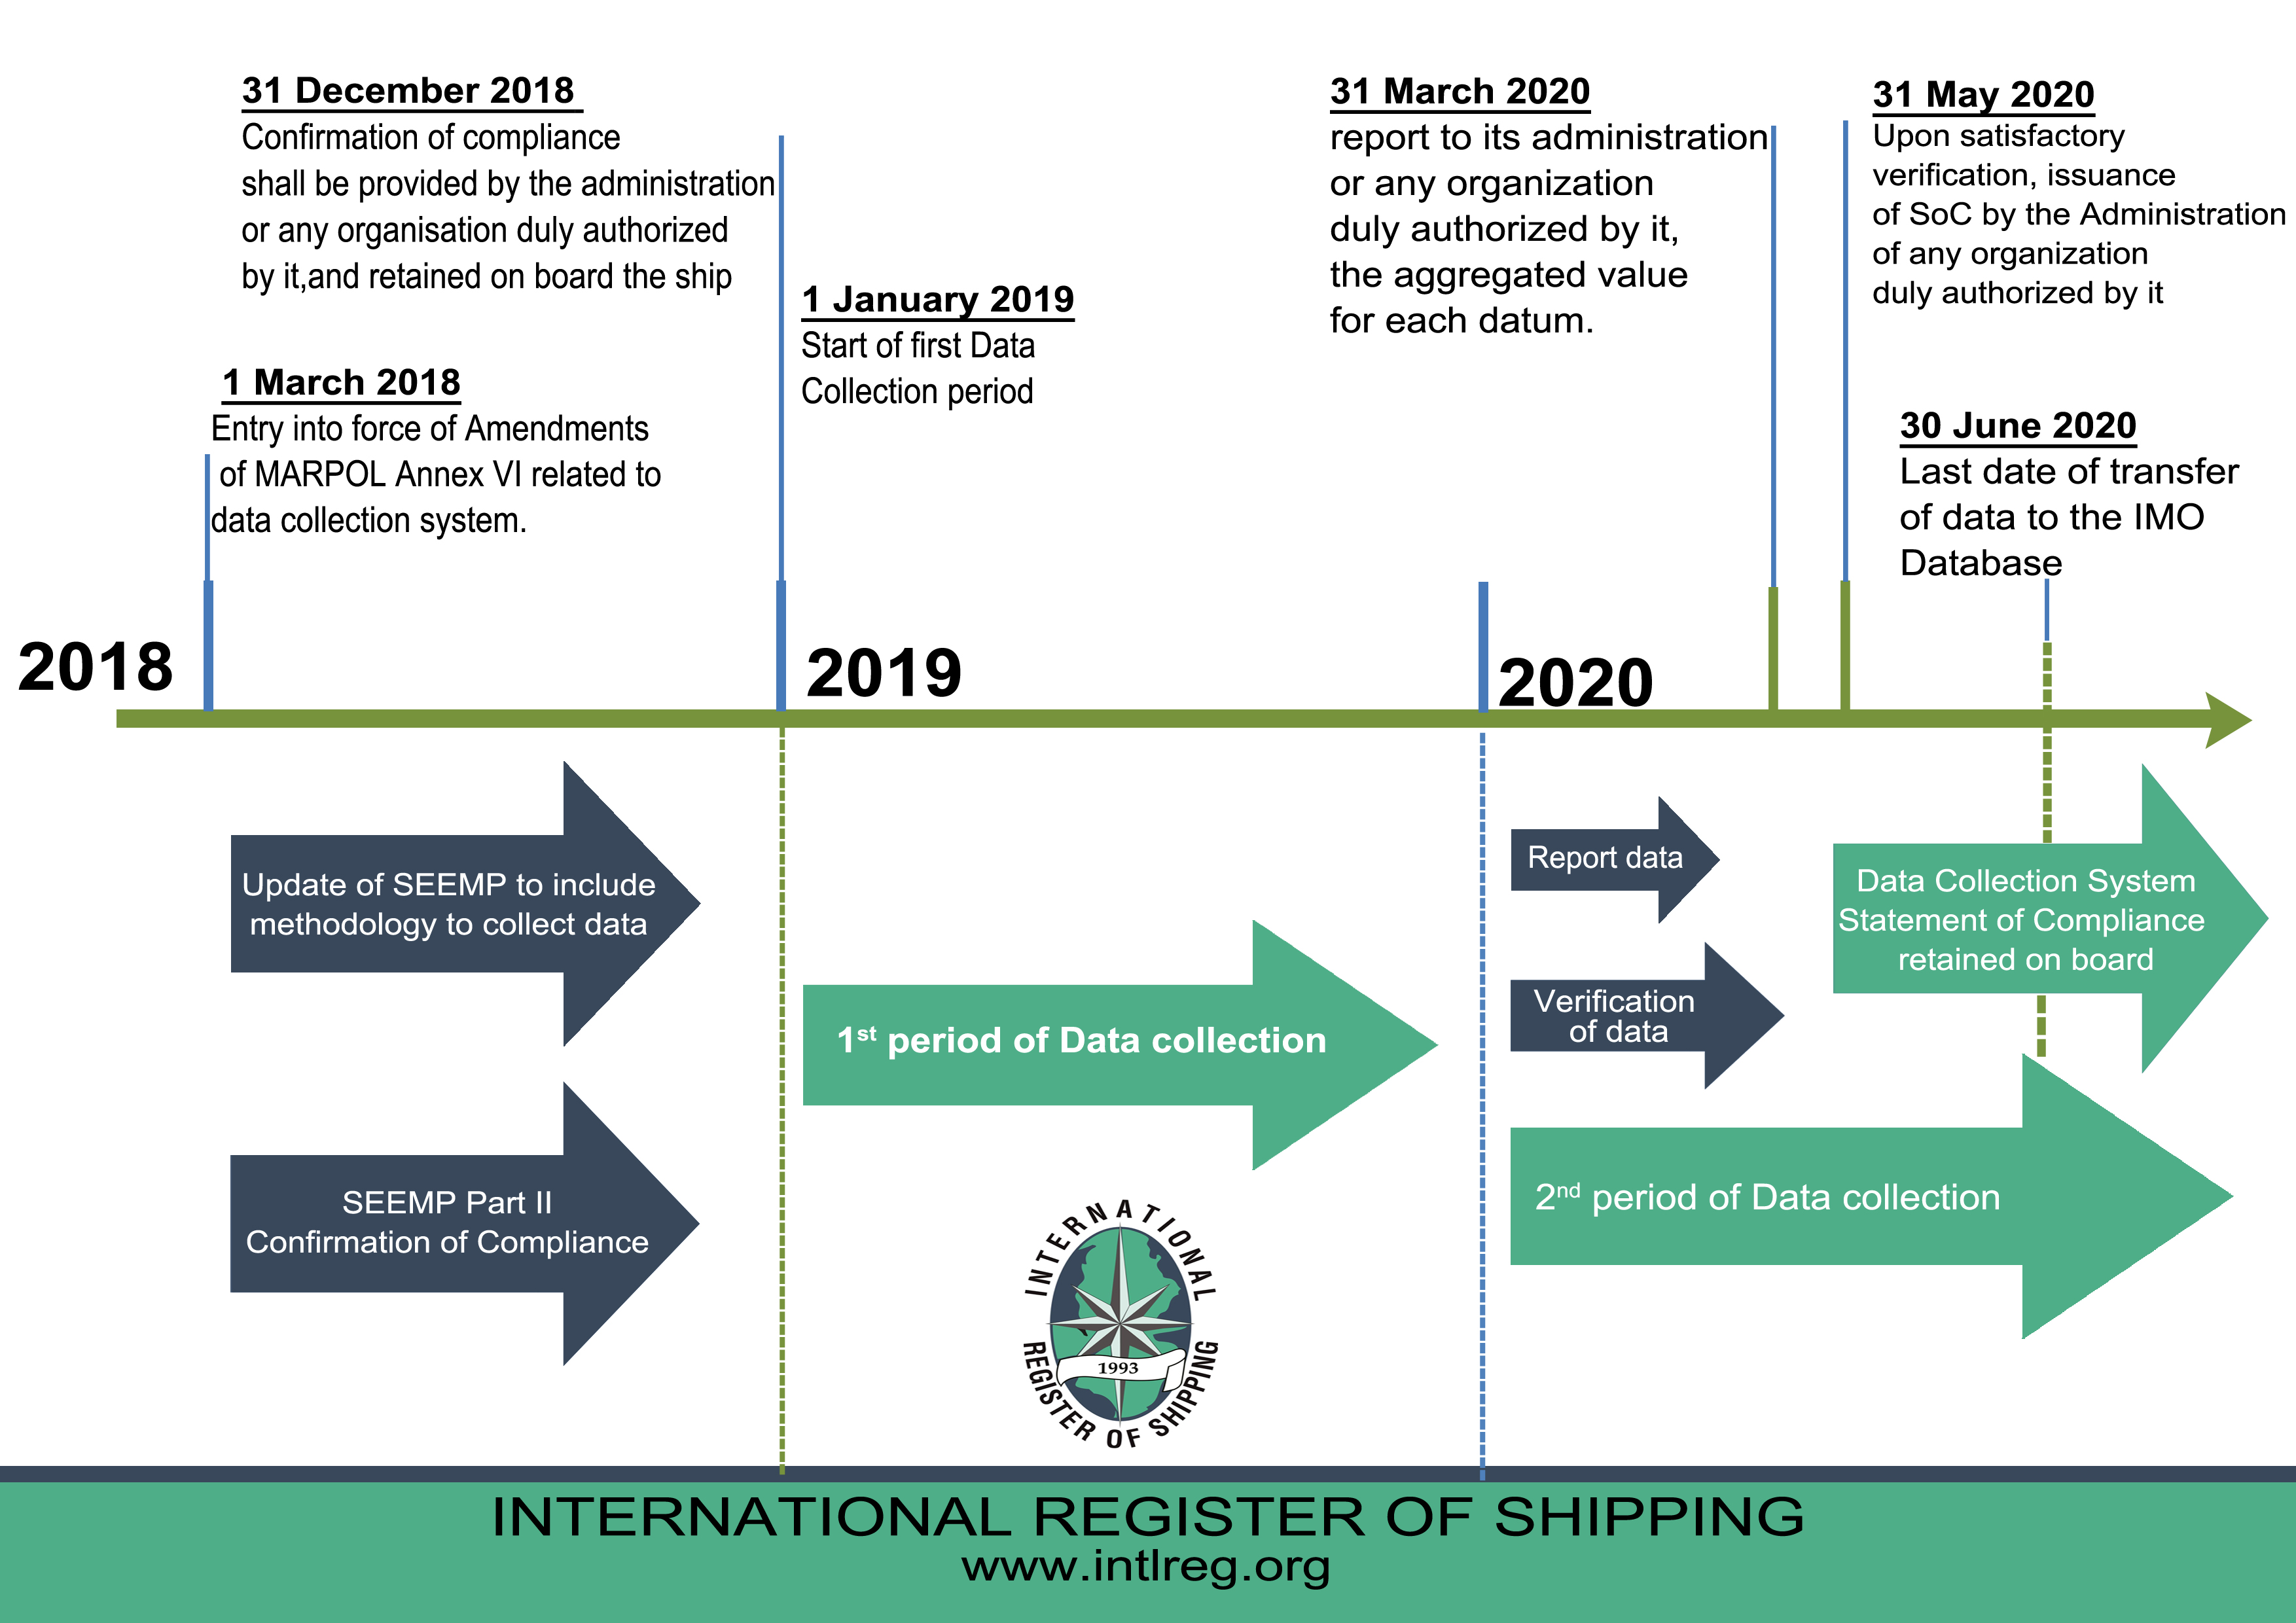 DEADLINE FOR IMO DCS  BY 31 MAY 2020 – STATEMENT OF COMPLIANCE SHALL BE ISSUED AND BE ON BOARD.